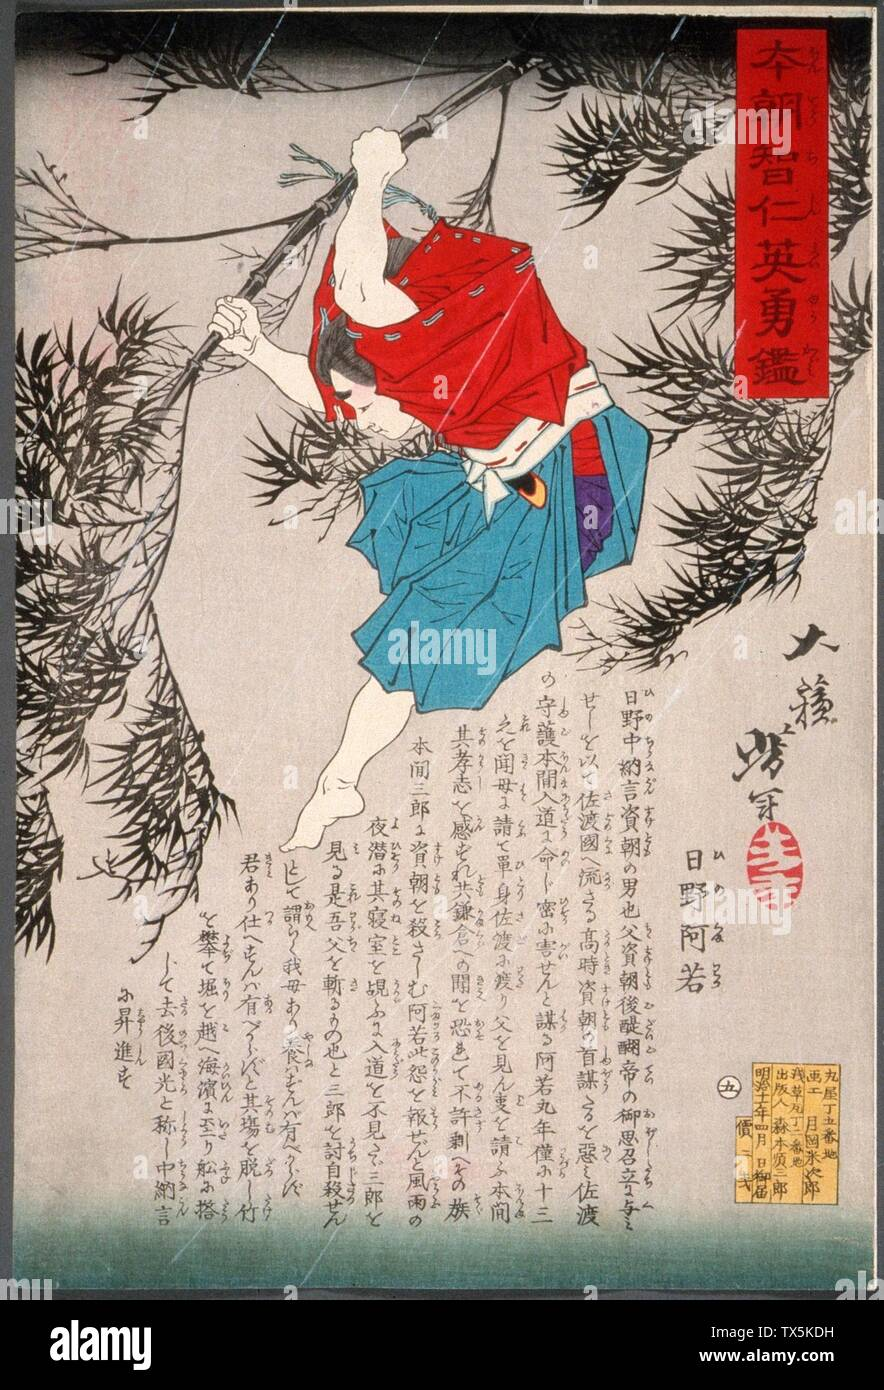 'Hino Kumawaka Leaping from Bamboo; English:  Japan, 1878 Series: A Mirror of Wisdom, Benevolence and Valor in Japan Prints; woodcuts Color woodblock print Herbert R. Cole Collection (M.84.31.272) Japanese Art; 1878date QS:P571,+1878-00-00T00:00:00Z/9; ' - Stock Image